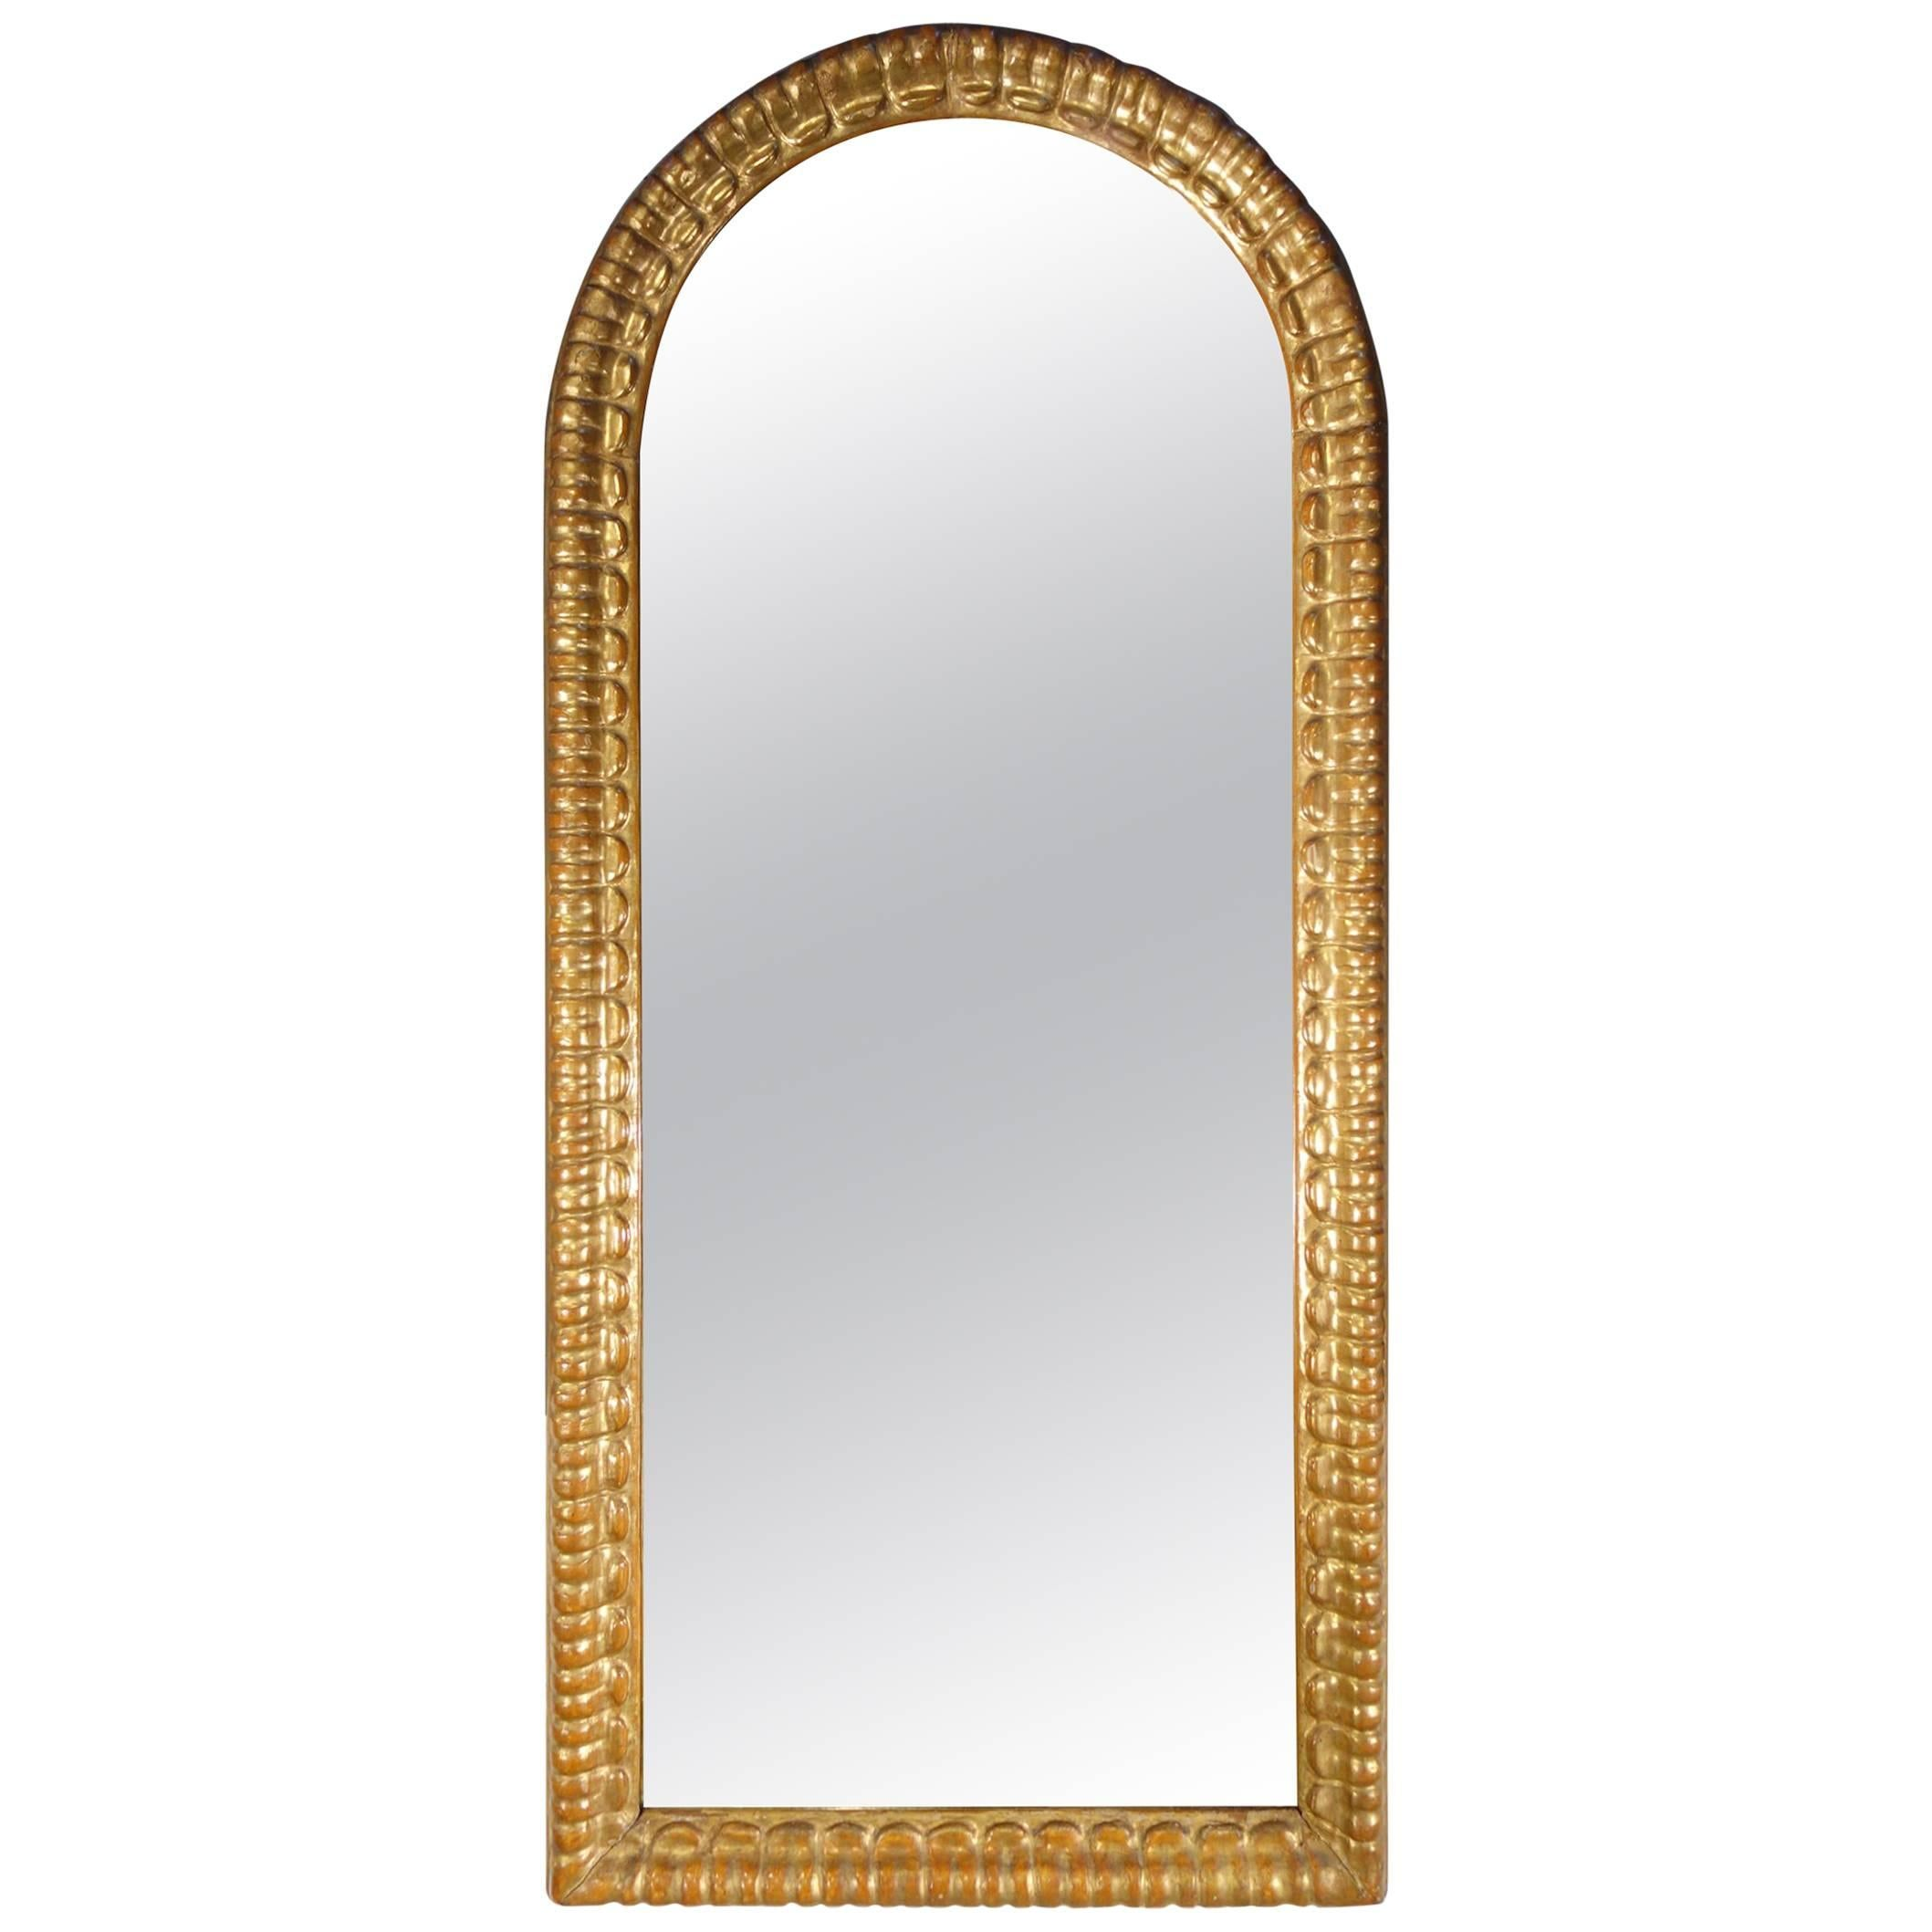 Early 19th Century Antique Italian Baroque Style Gold Gilt Oval Vertical Mirror